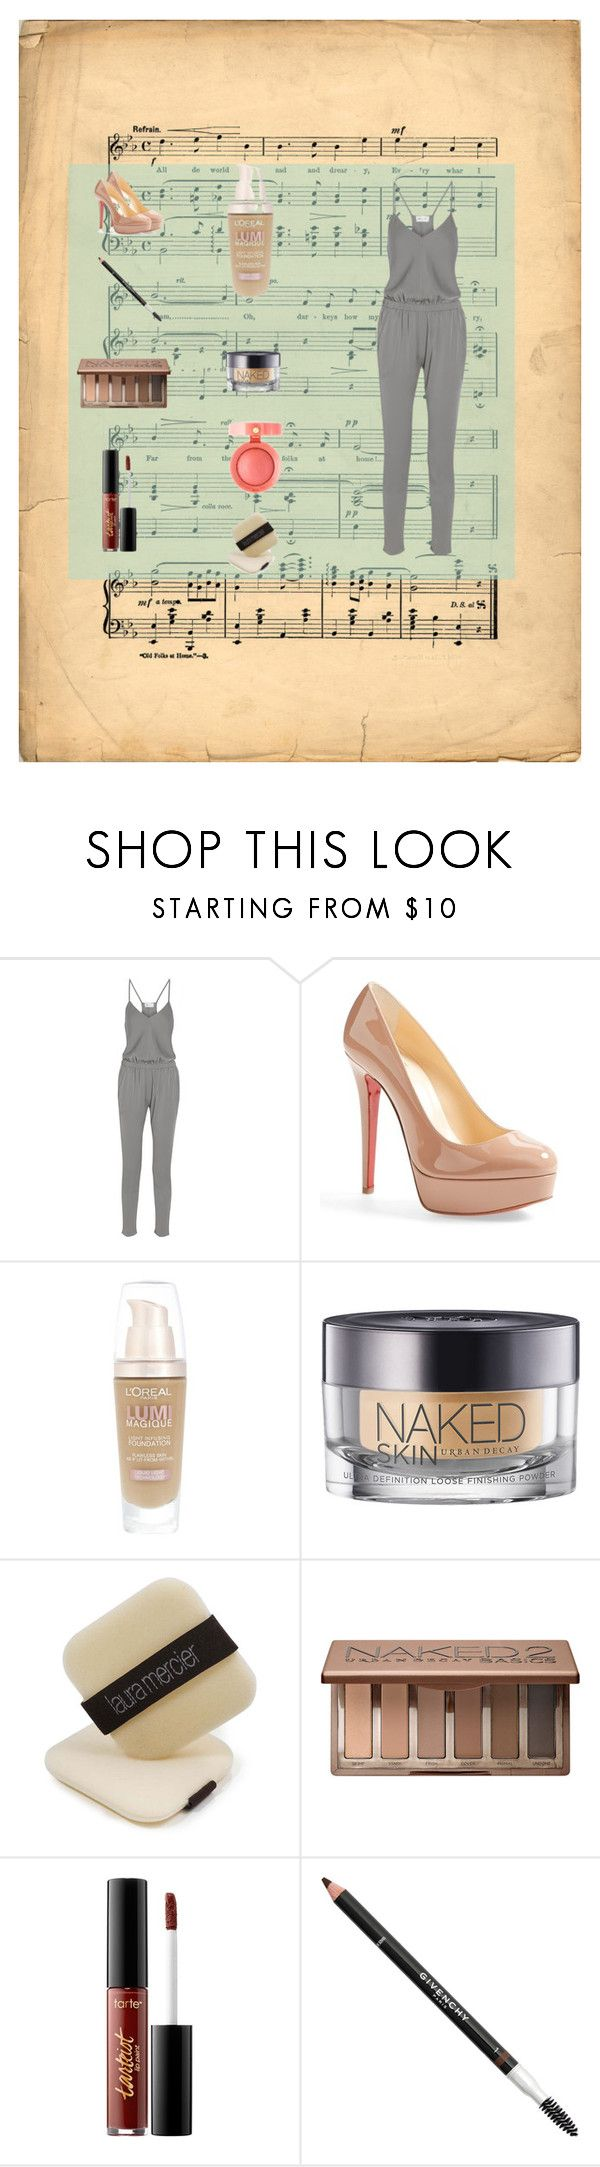 """summer combi outfit"" by layalfirdaws on Polyvore featuring mode, Milly, Christian Louboutin, L'Oréal Paris, Urban Decay, Laura Mercier, tarte, Givenchy et Bourjois"